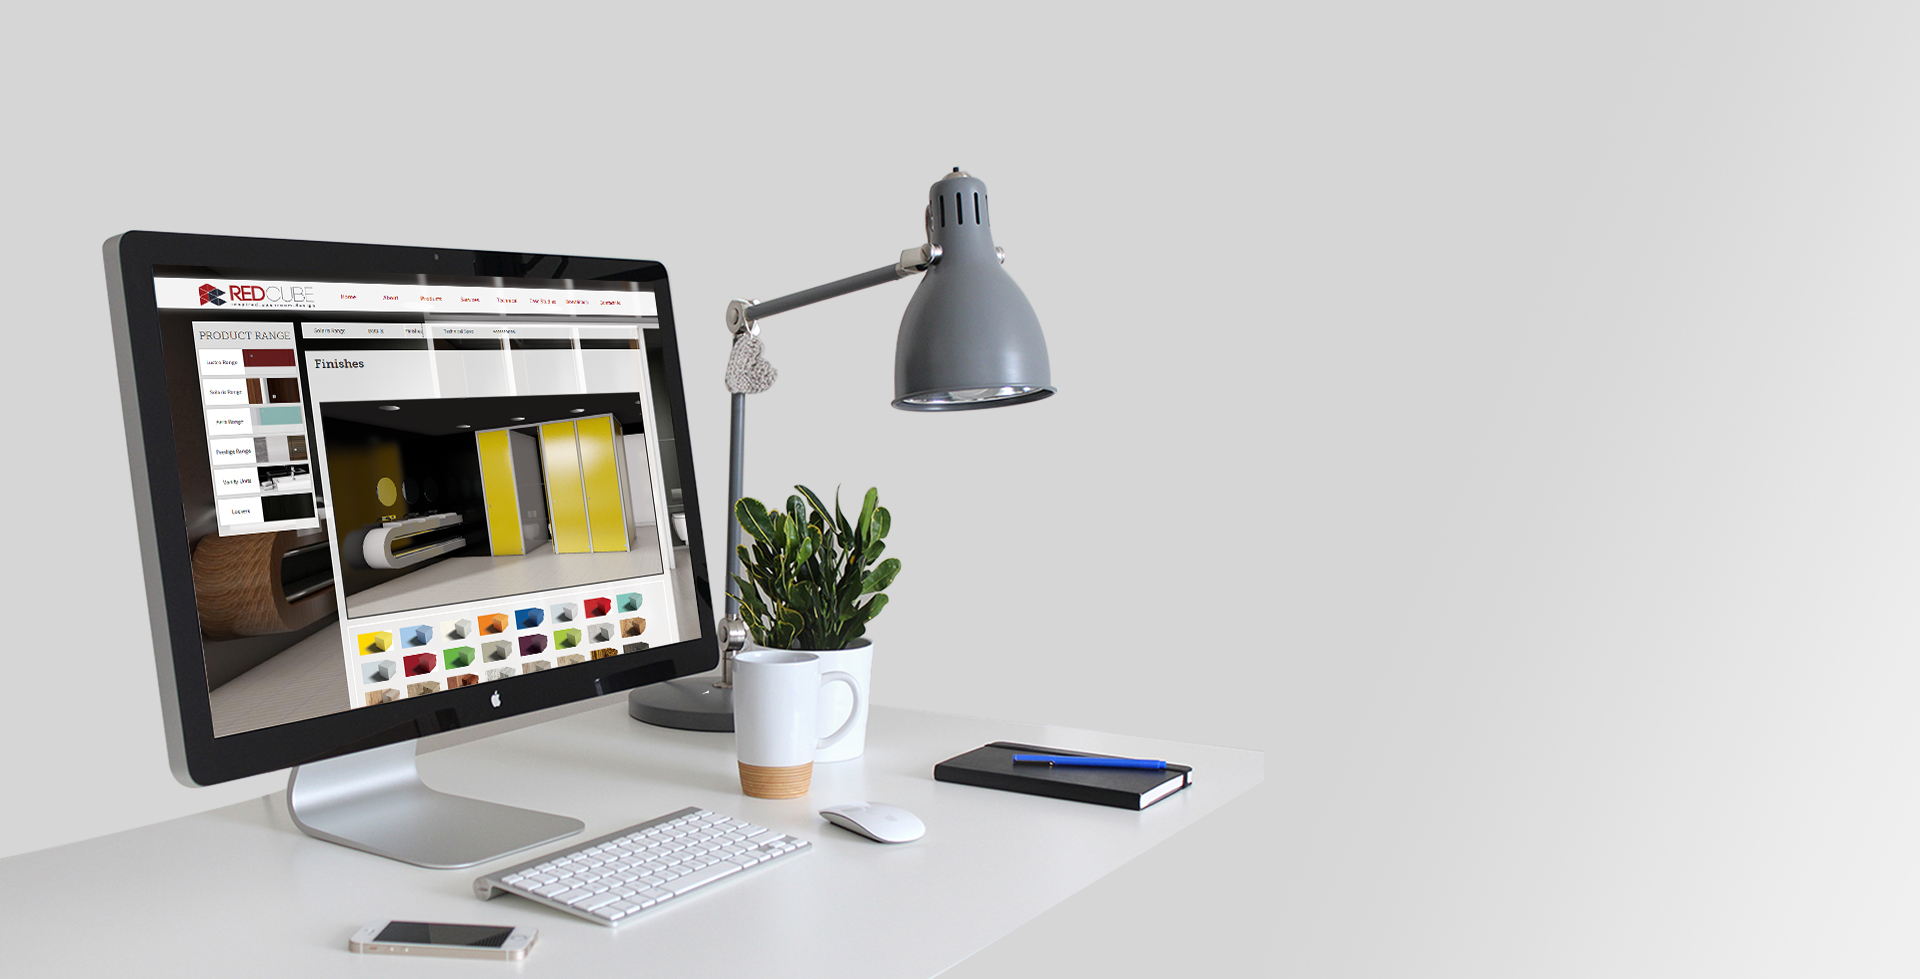 What is The Web Design Trends in 2018?